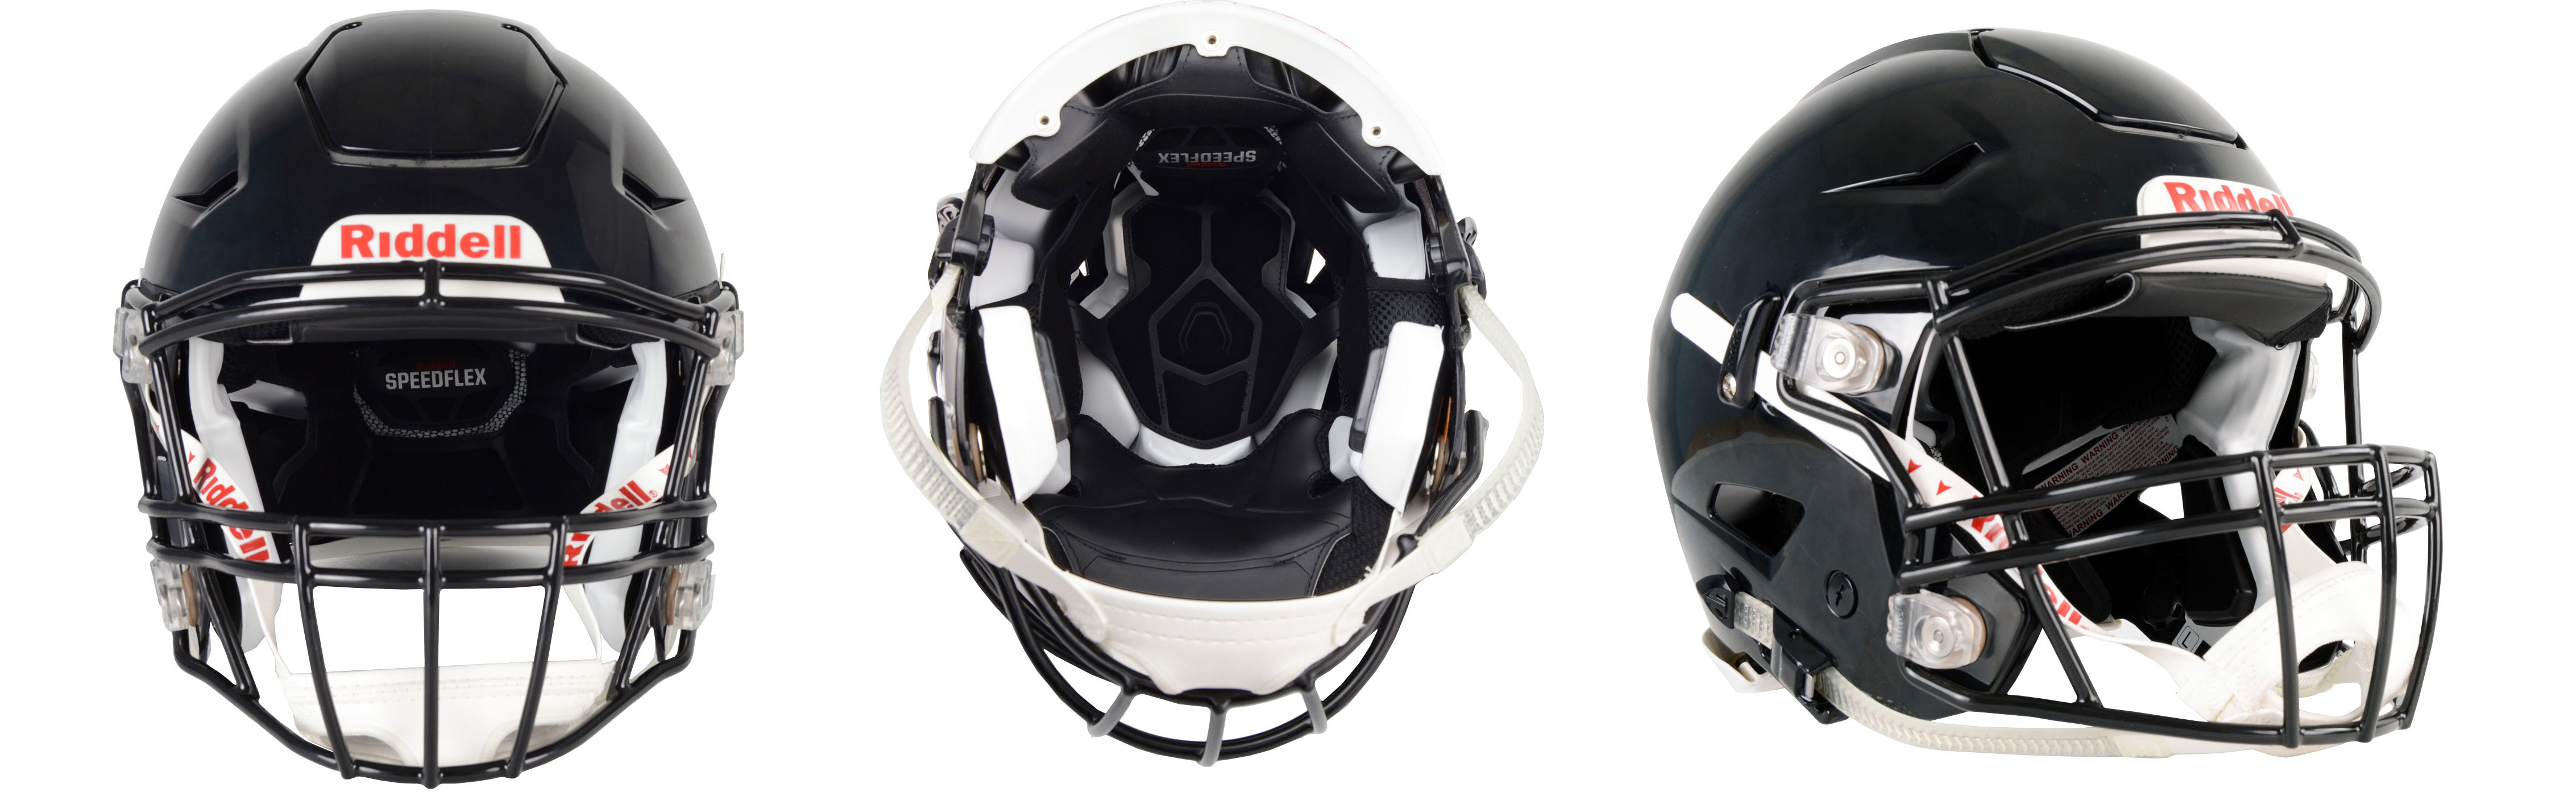 riddell speedflex helmet release date Release summary kranos corporation dba schutt sports filed a lawsuit today against riddell, inc claiming that riddell is infringing three patents covering schutt's football helmet technologies.